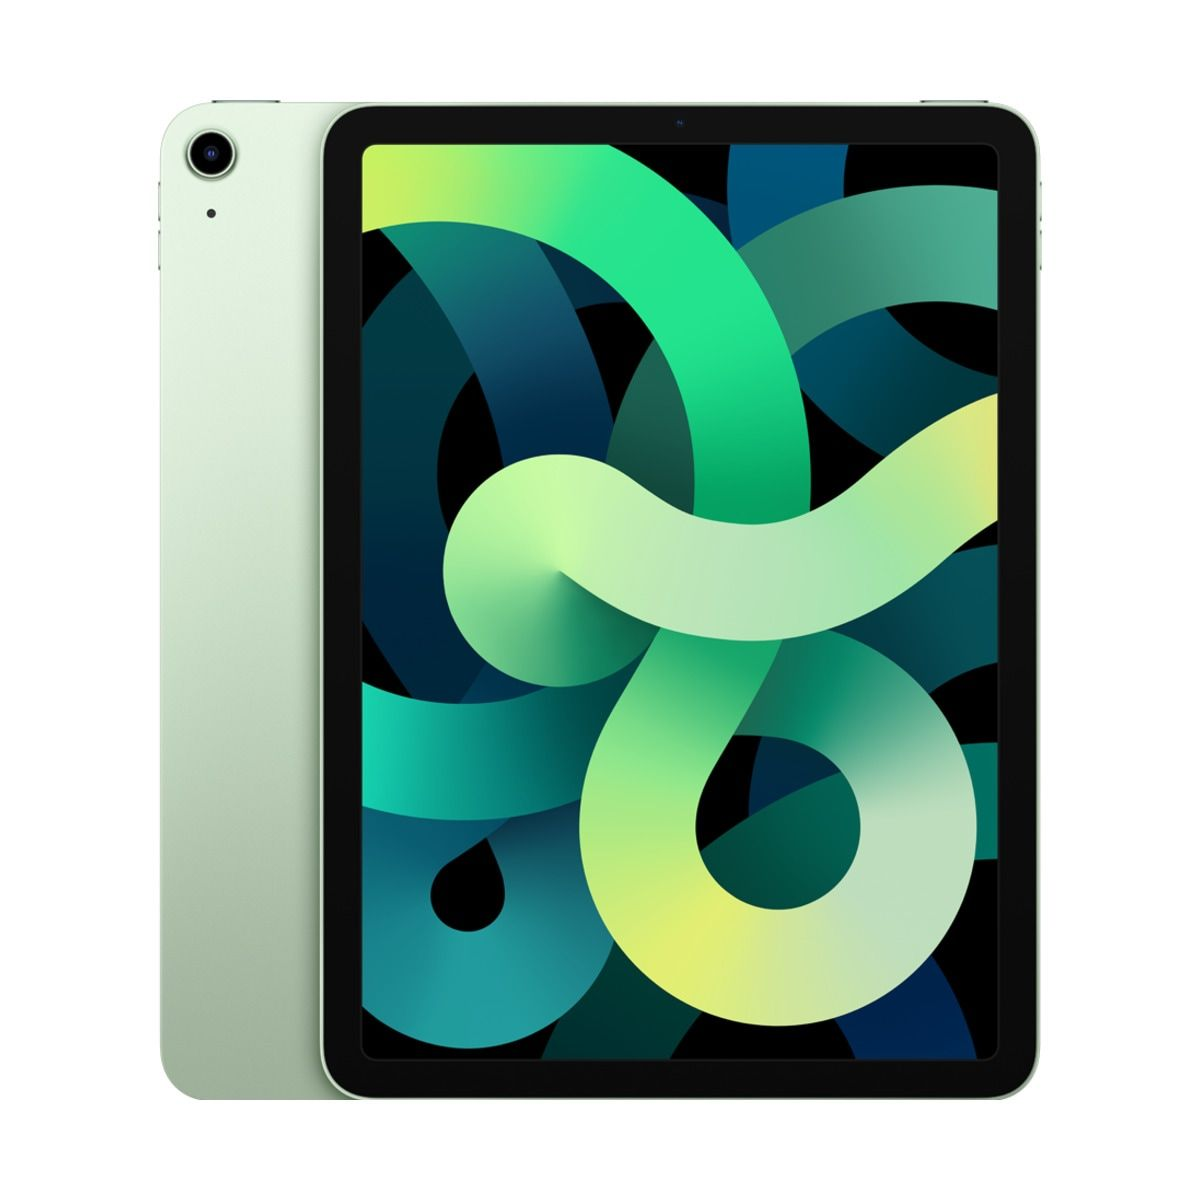 iPad Air Wi-Fi 256GB - Green